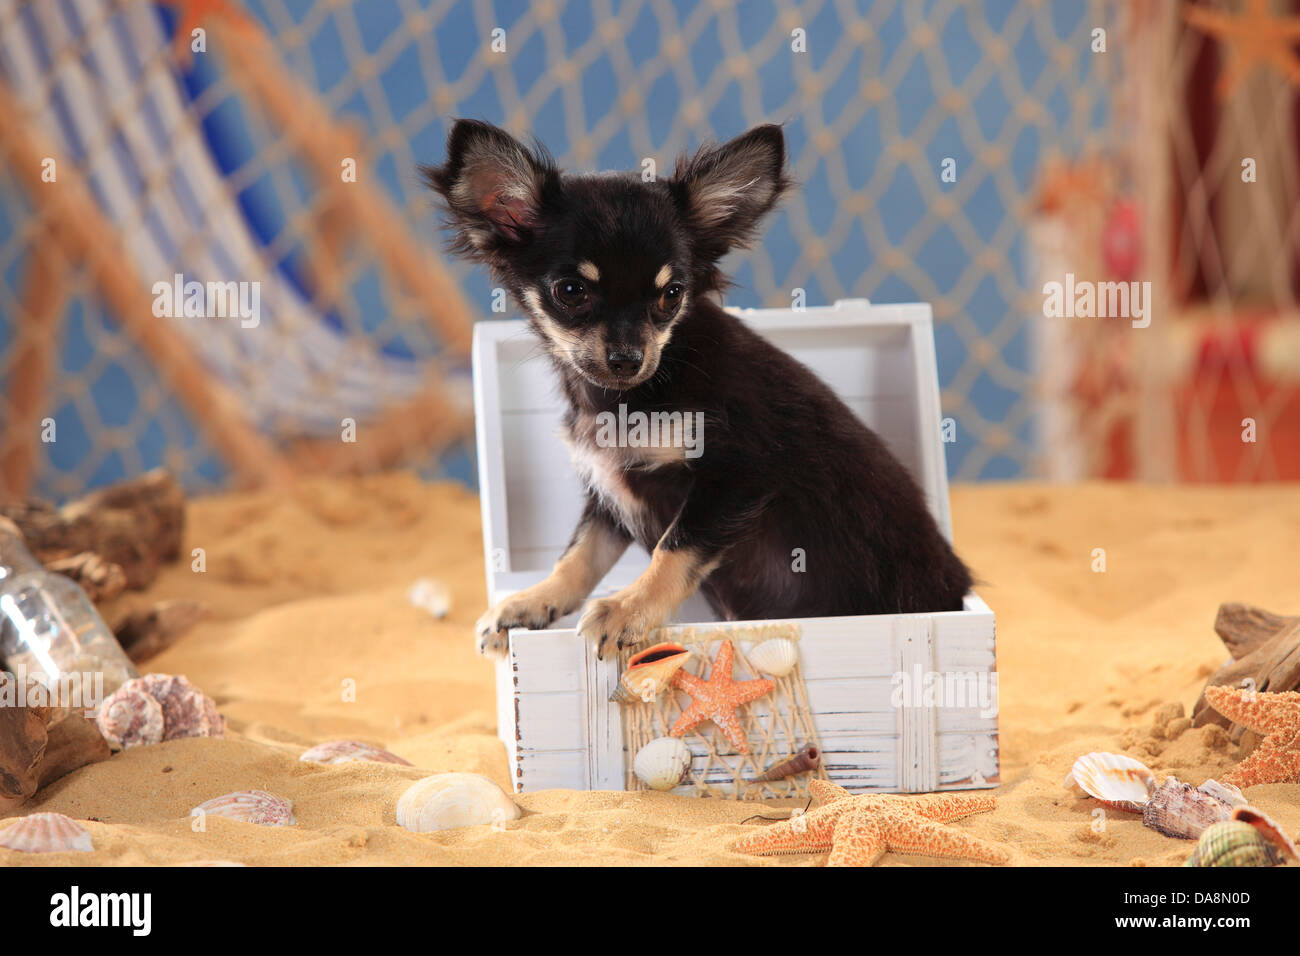 Chihuahua, longhaired, puppy, black-cream-white |Chihuahua, langhaarig, Welpe, schwarz-creme-weiss - Stock Image